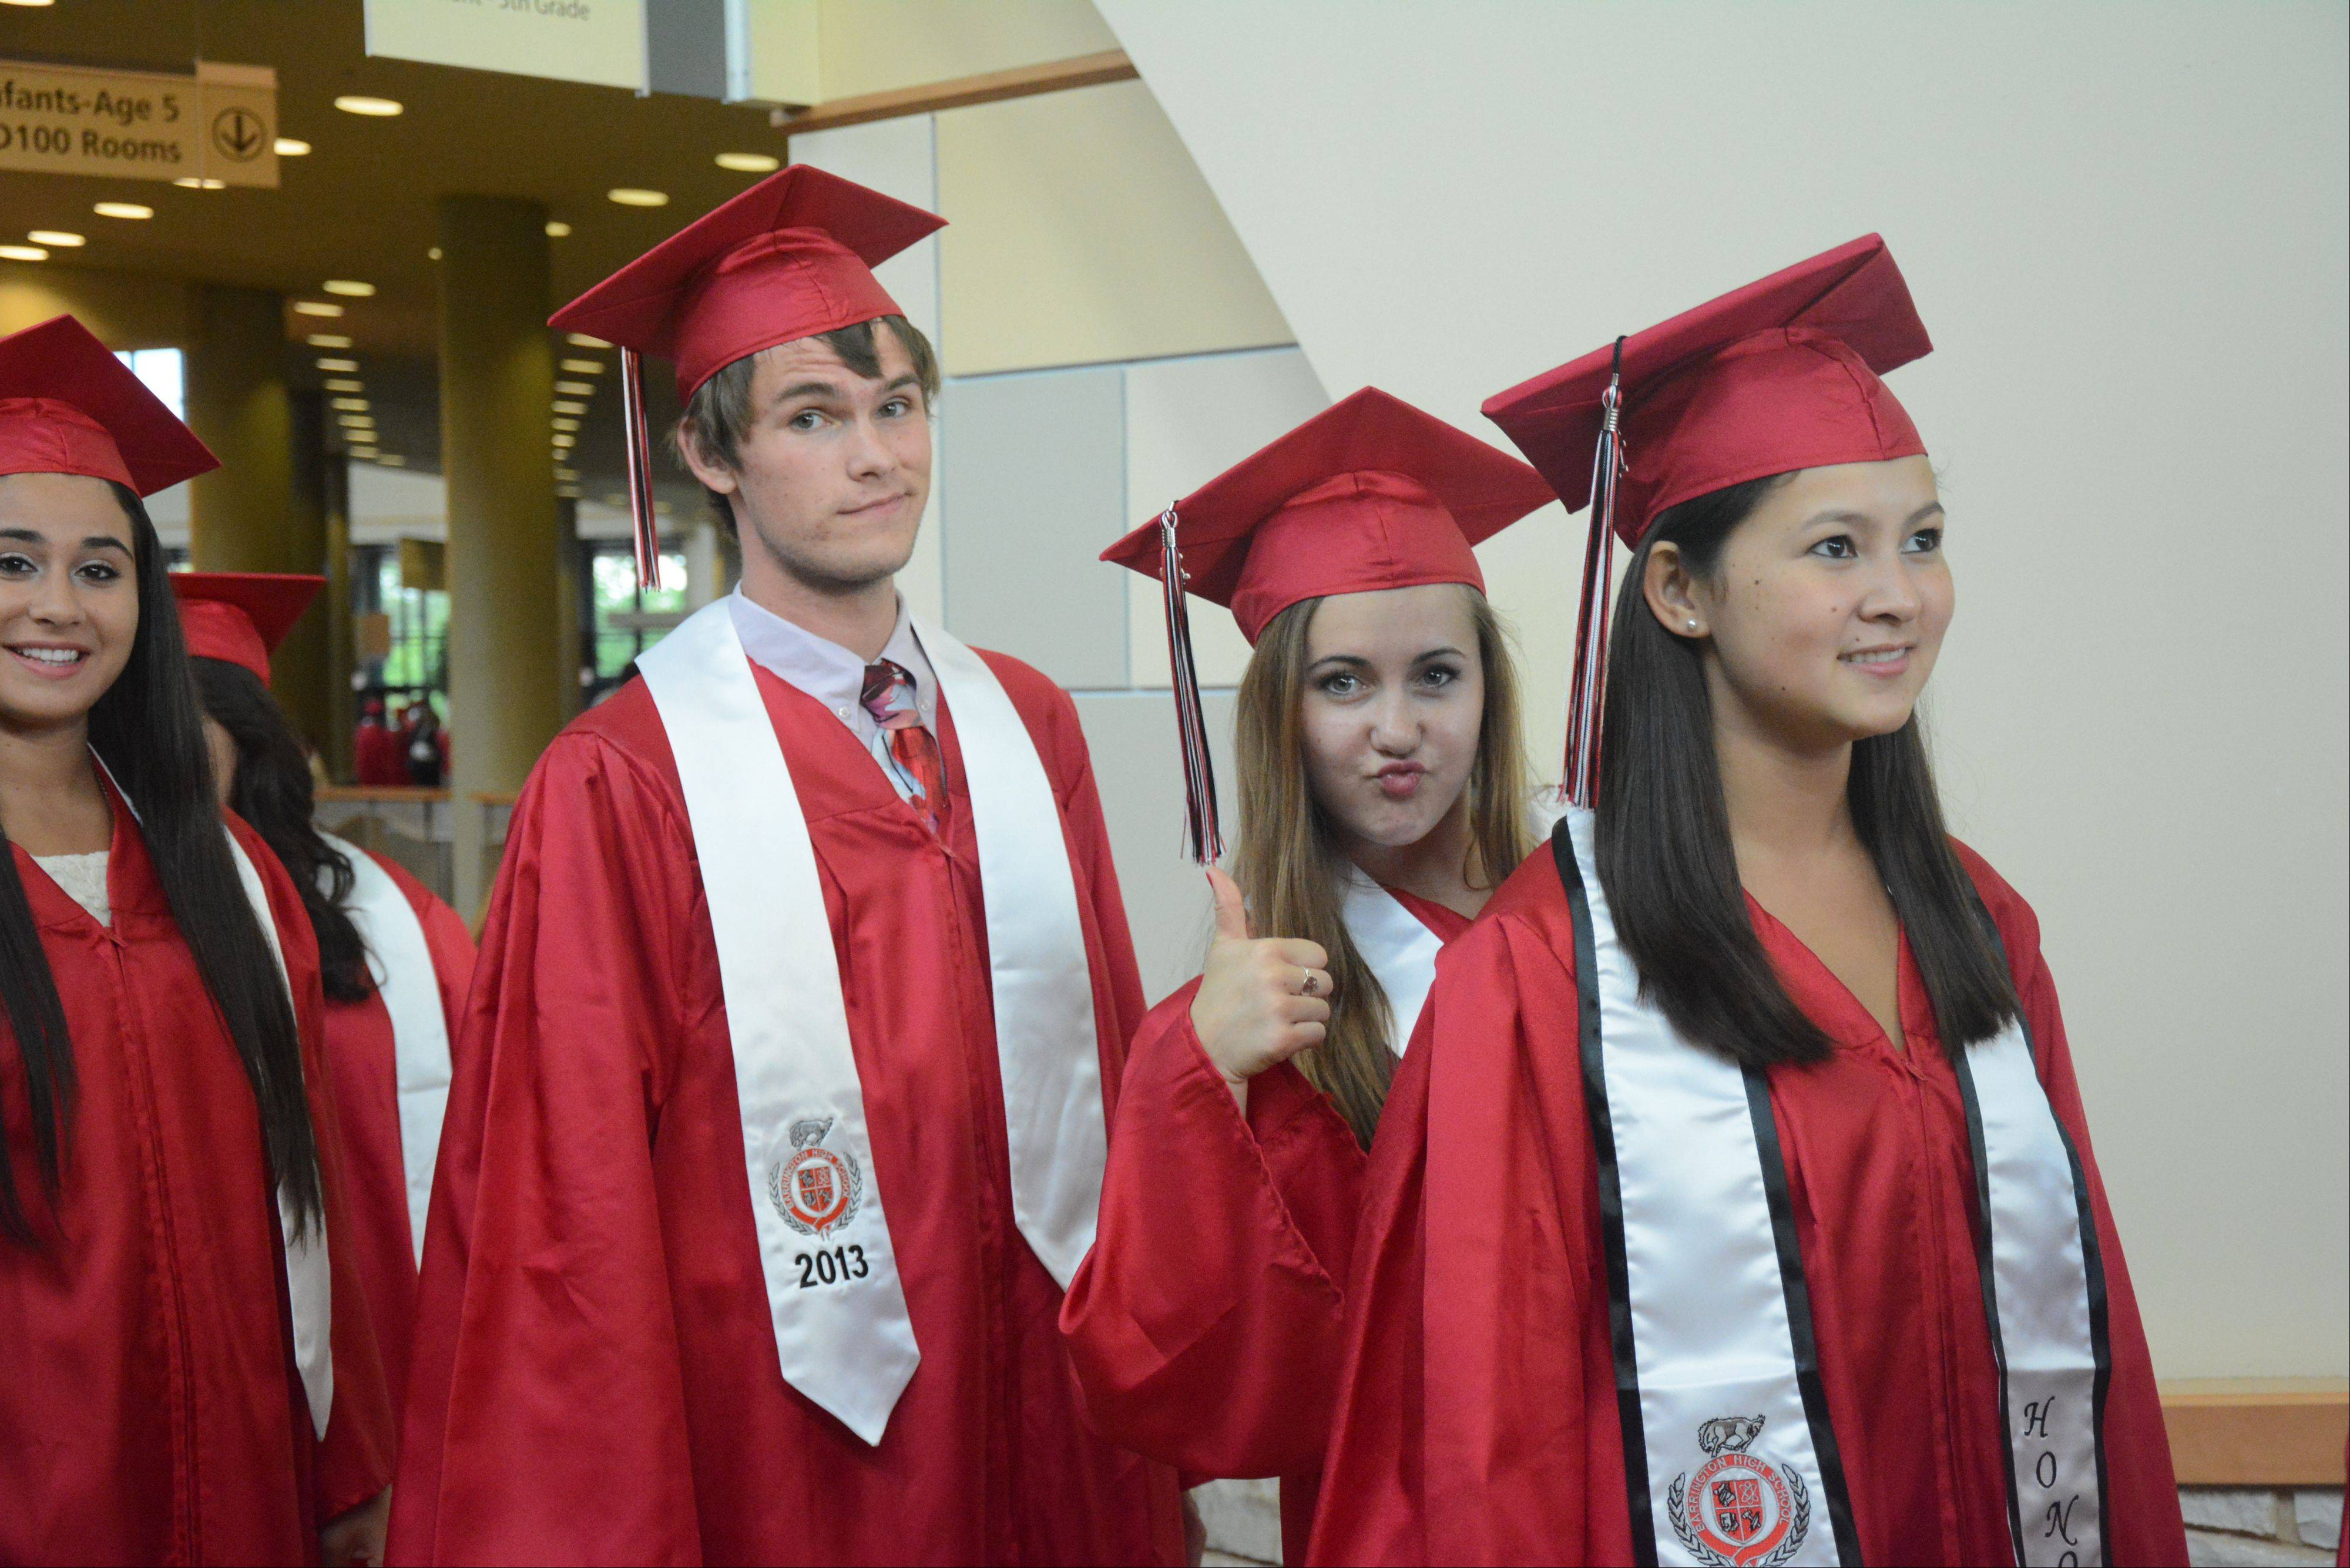 Images from the Barrington High School graduation on Friday, May 31, at Willow Creek church in South Barrington.